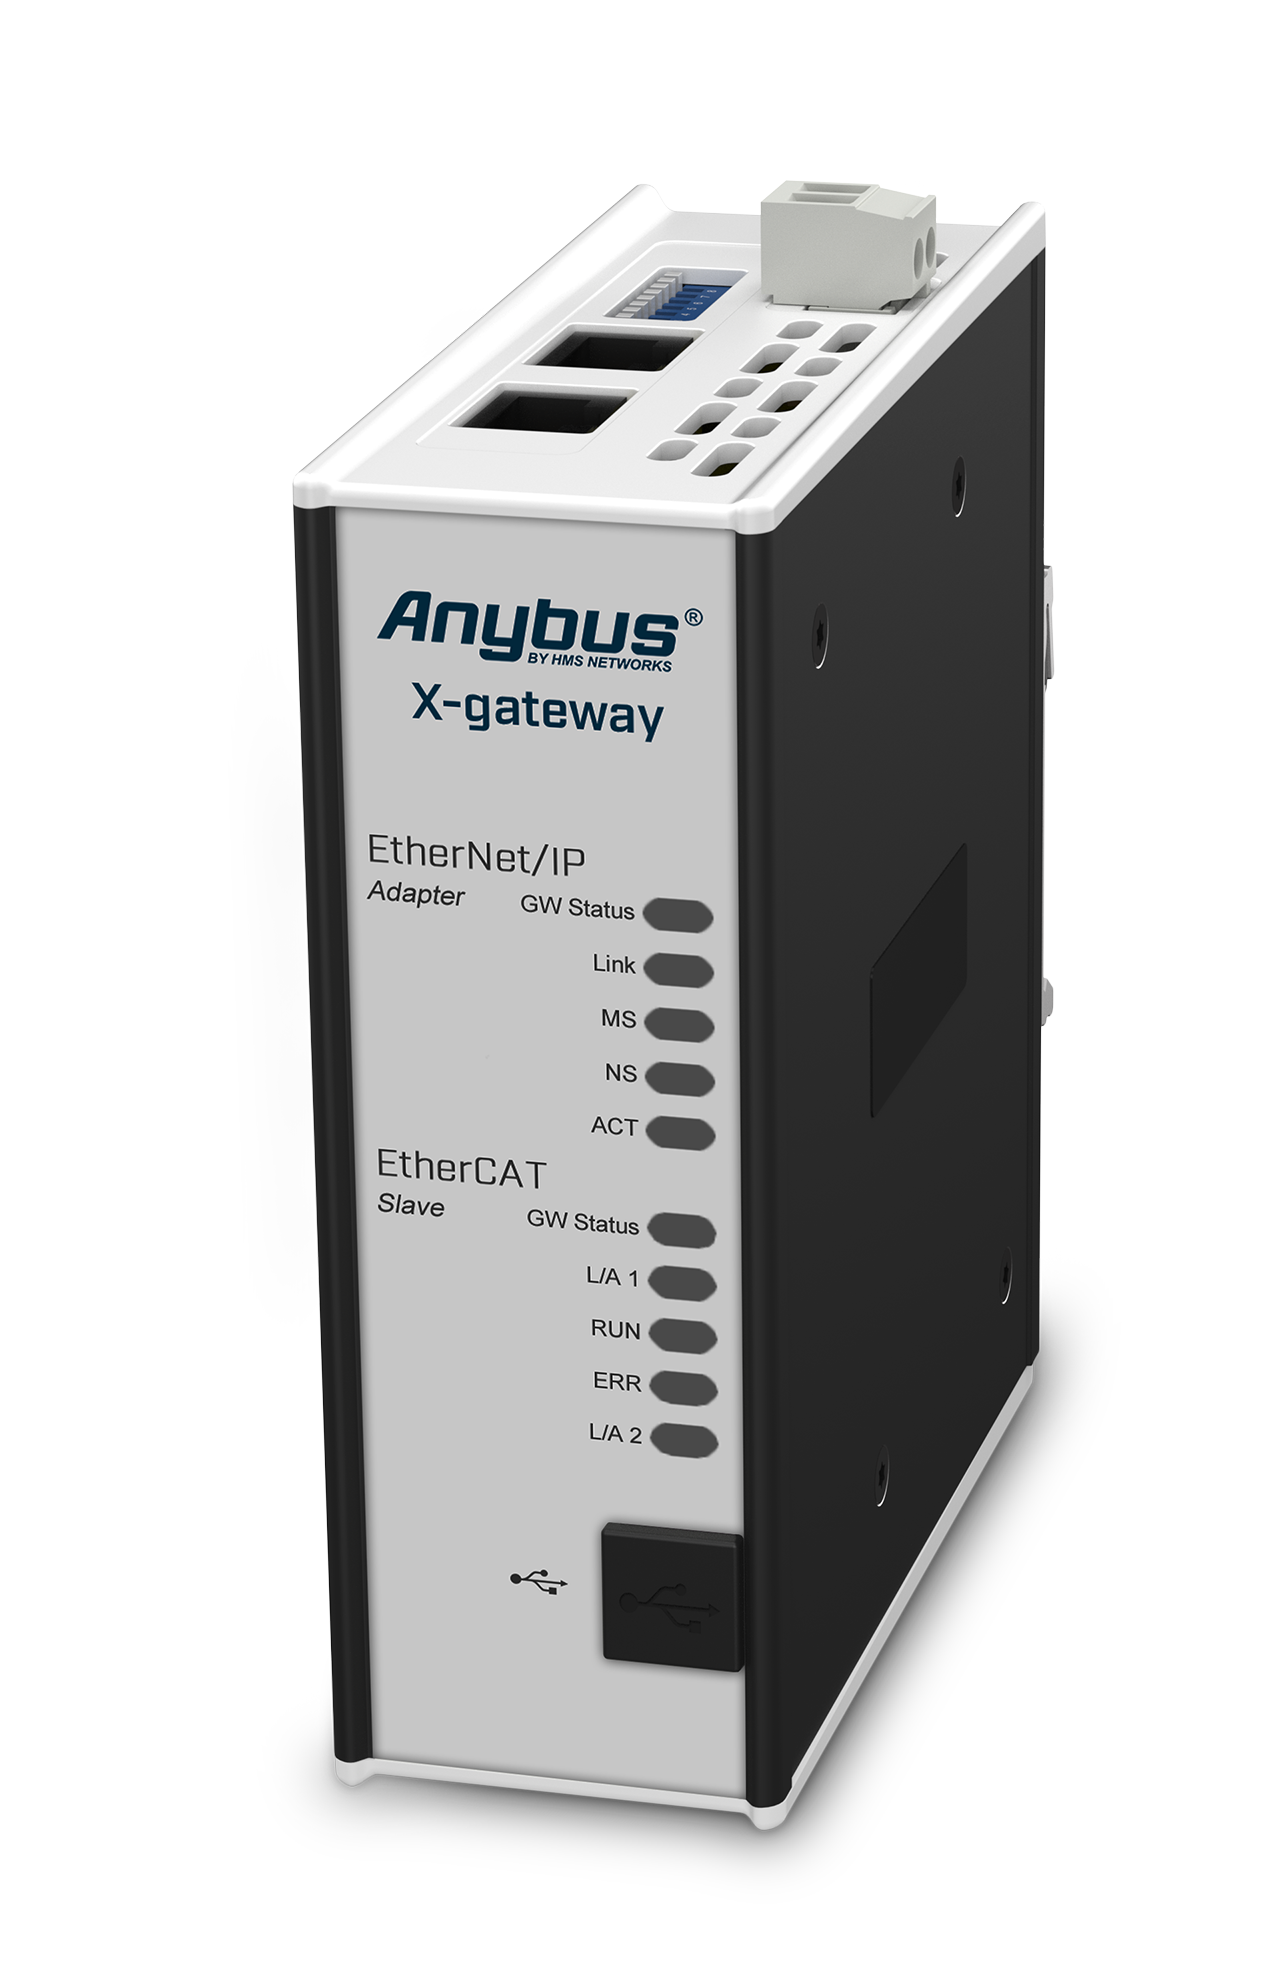 AB7682- Anybus X-gateway – EtherCAT Slave - EtherNet/IP Adapter - Anybus Vietnam